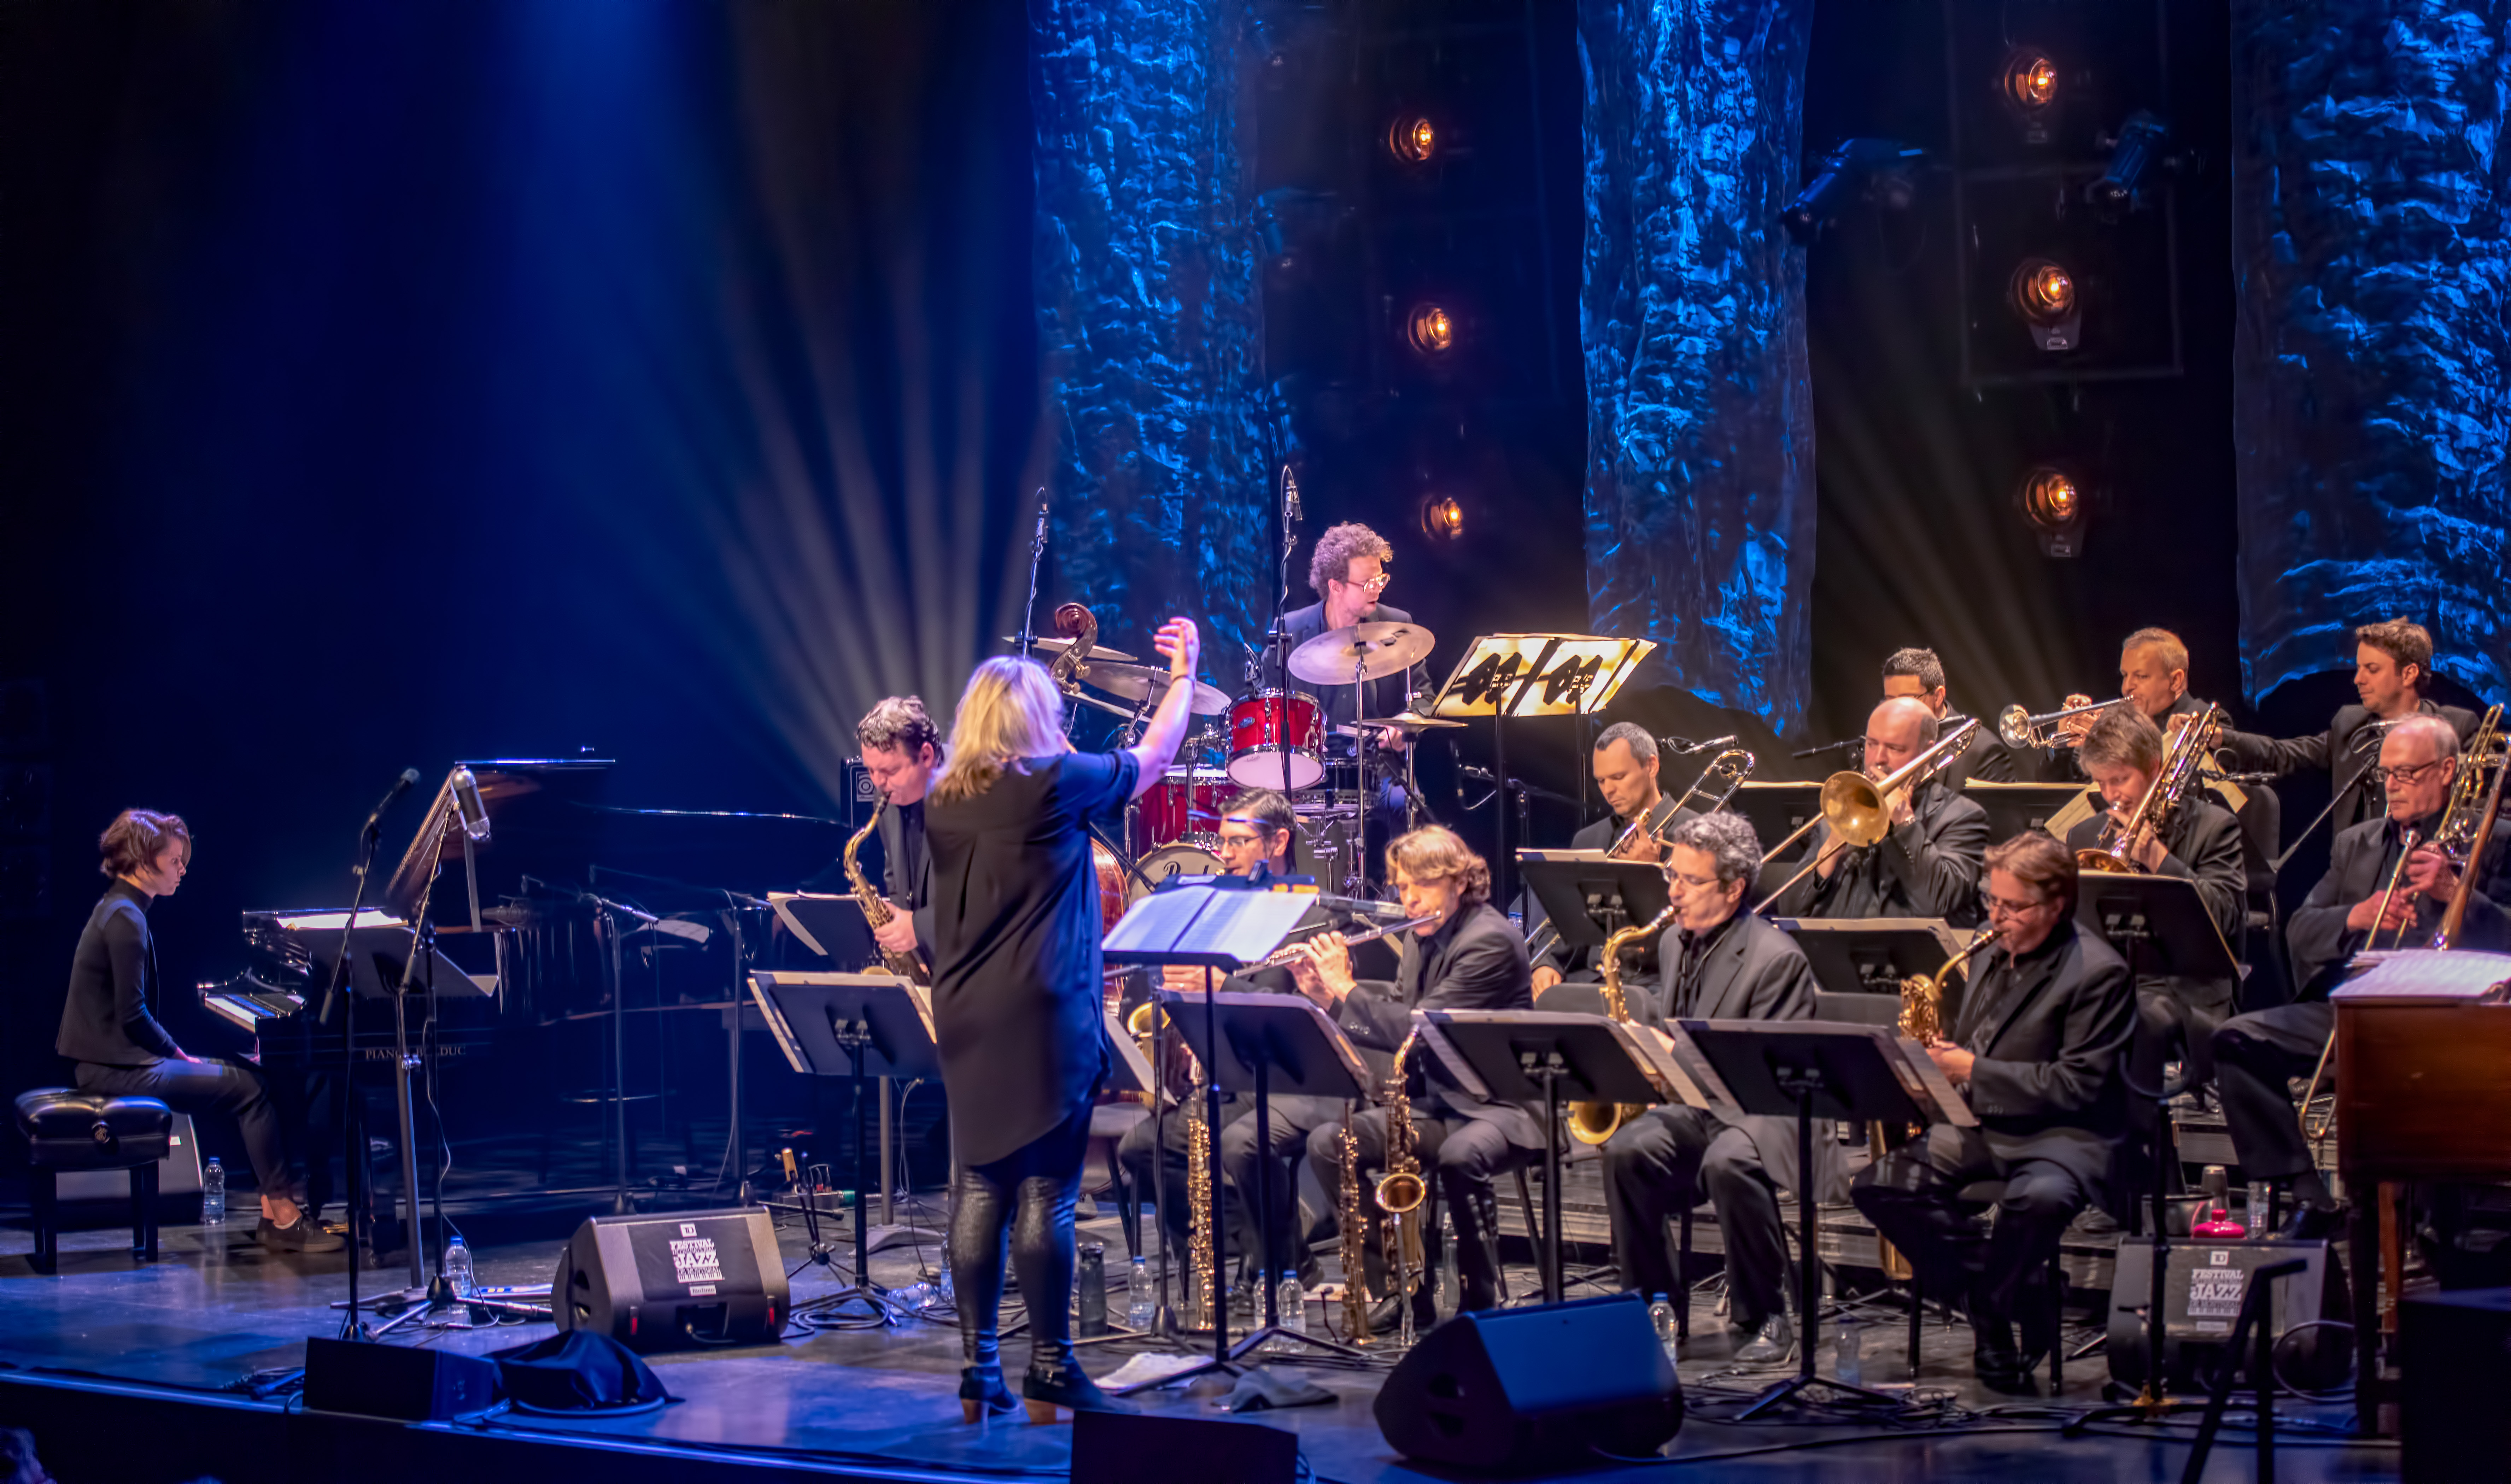 Christine Jensen And L'orchestre National De Jazz Montreal At The Montreal International Jazz Festival 2018